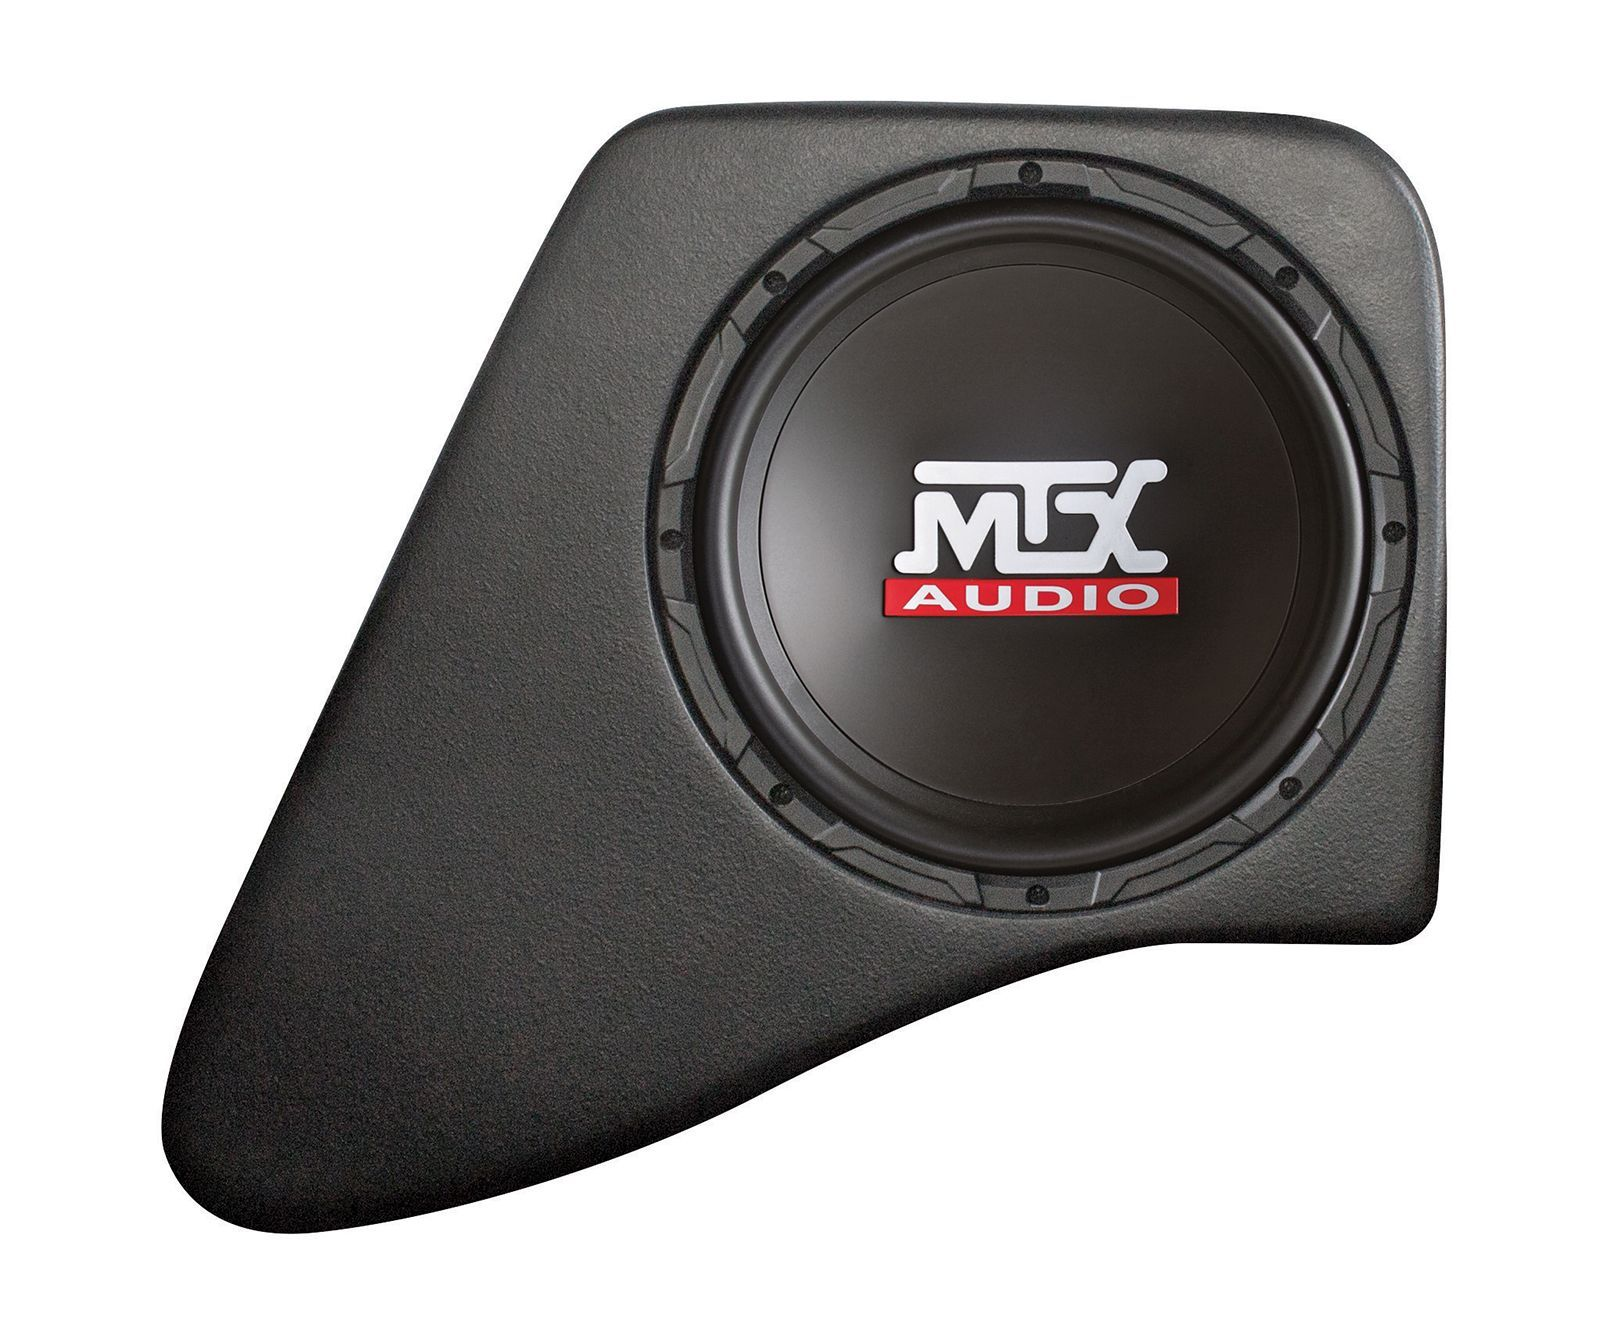 Search Mtx Audio Serious About Sound Wire Harness Black Molding Vehicle Specific Thunderform Enclosures Are Designed To Utilize Space In Vehicles That Would Otherwise Go Unused Add A Subwoofer Enclosure